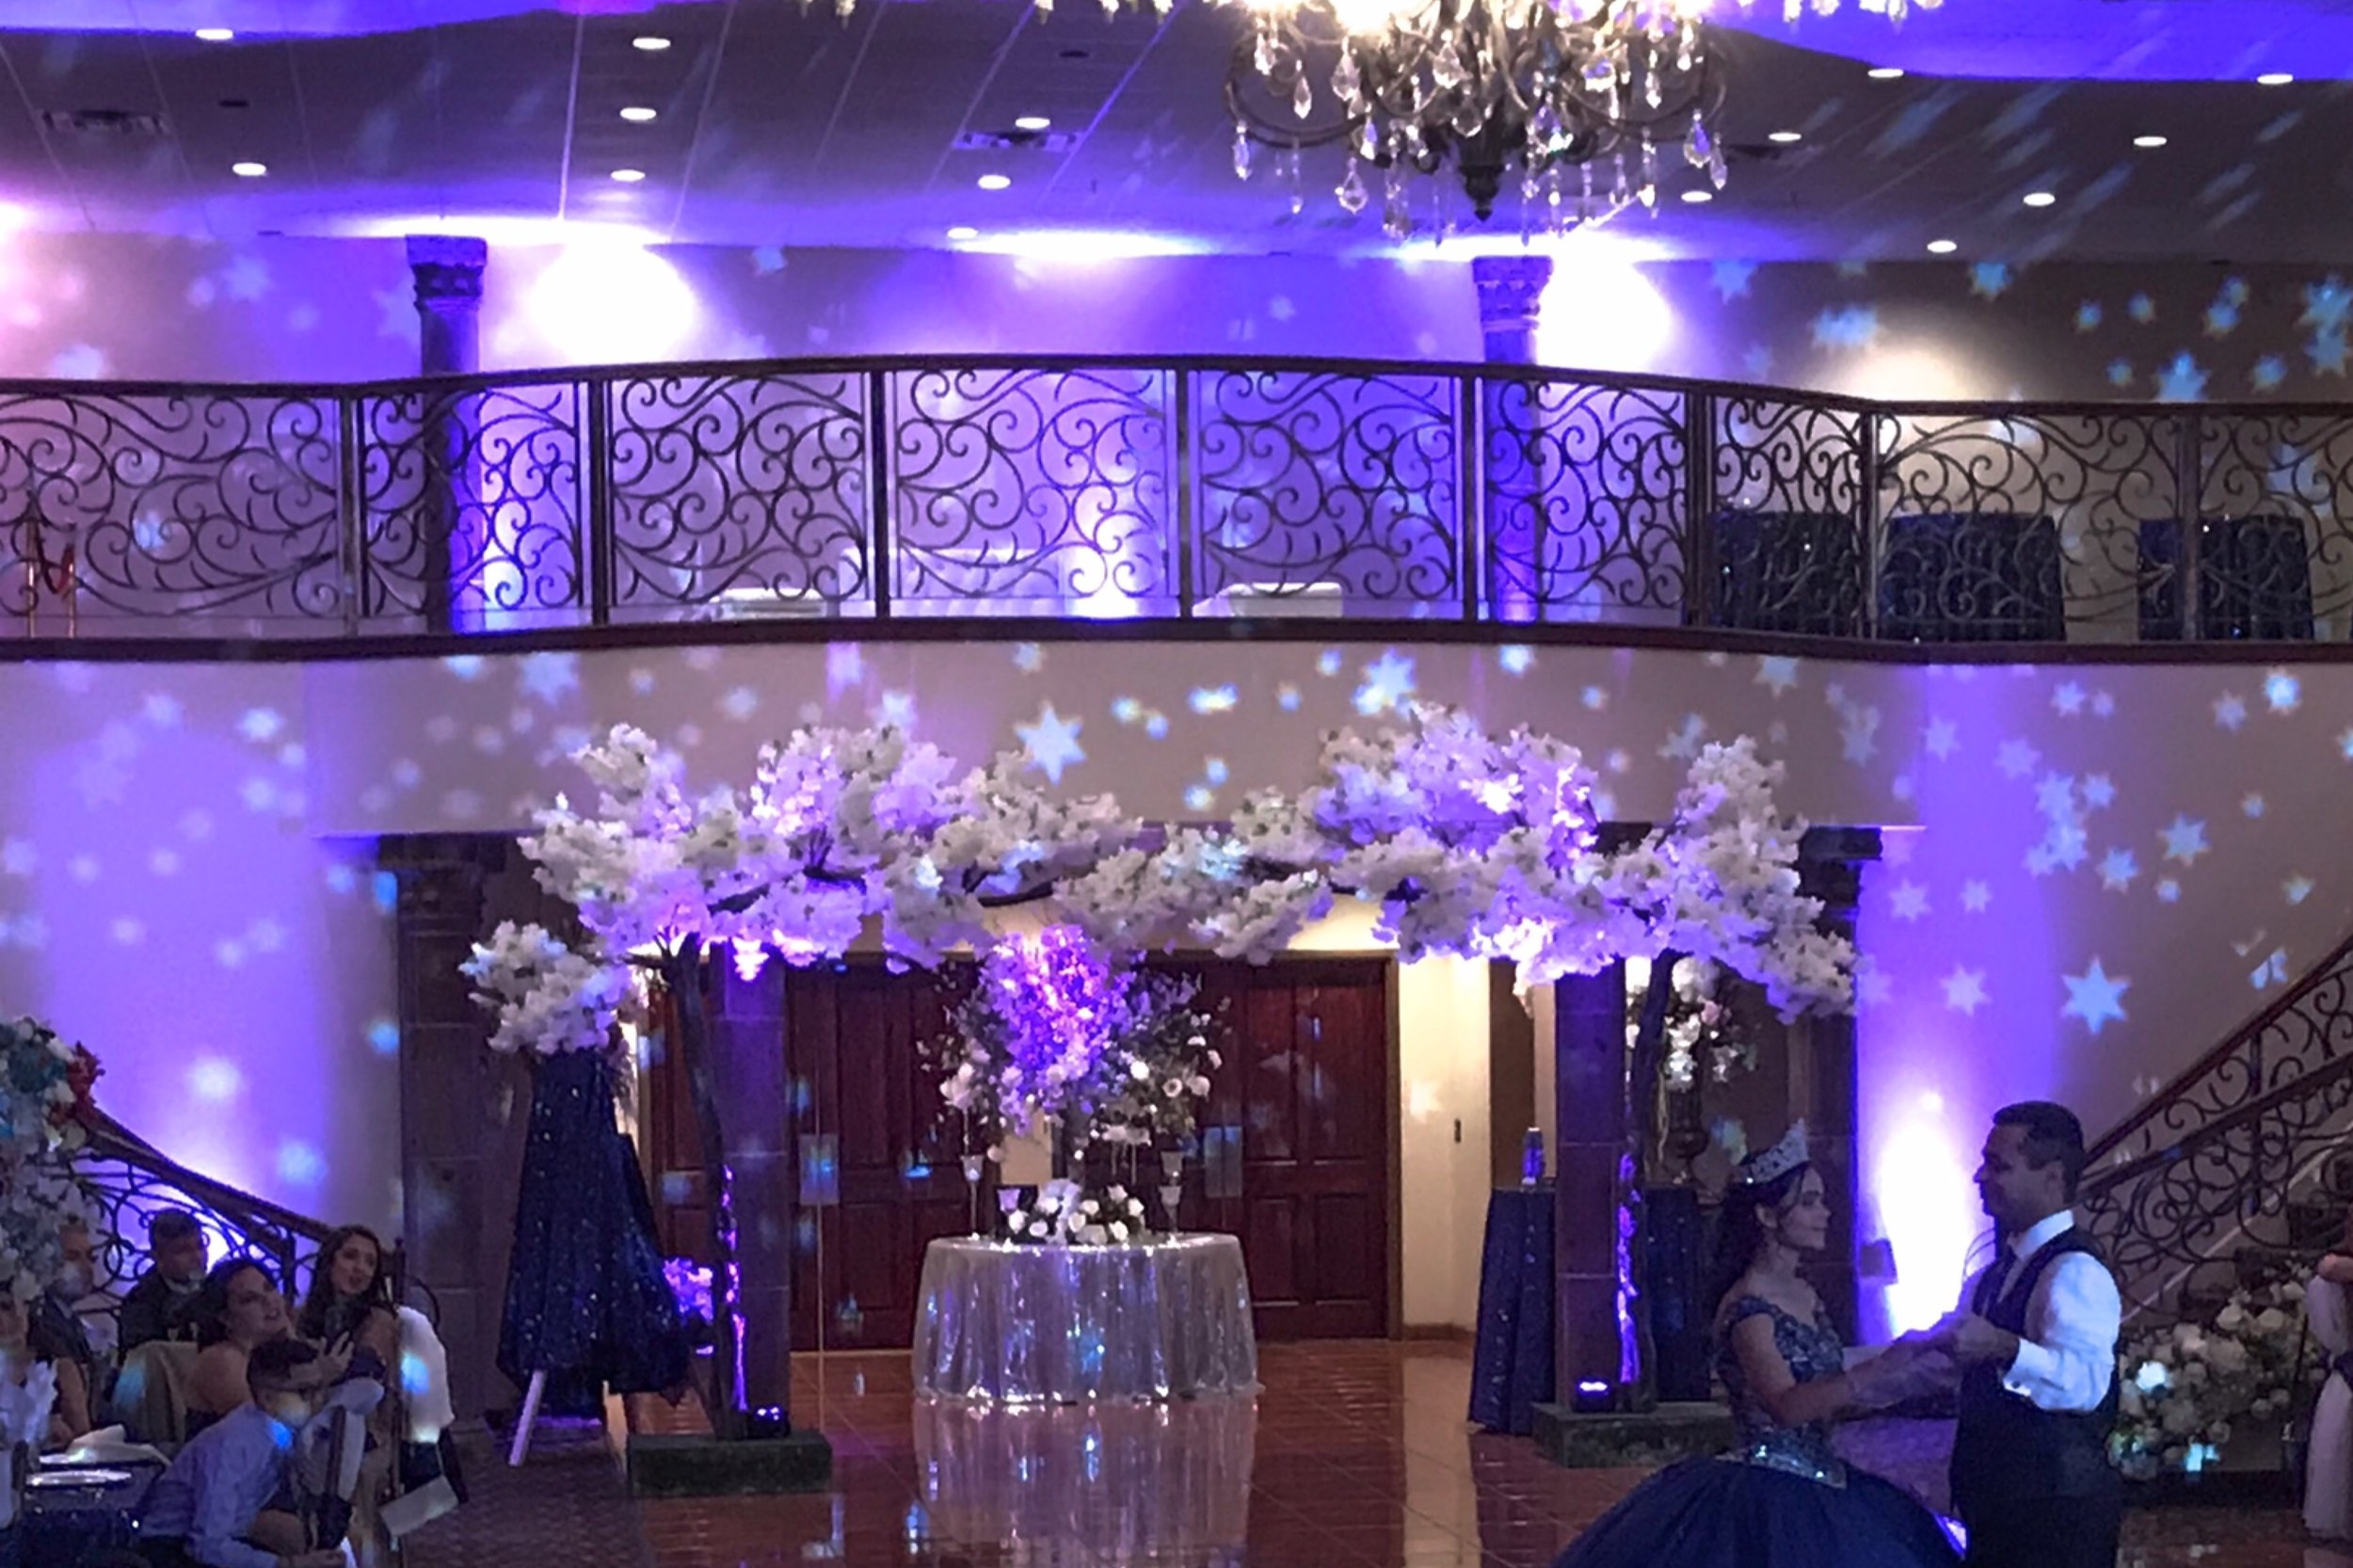 THEMED LIGHTING - WHETHER ITS A STARTY NIGHT SKY EFFECT OR A BLACK LIGHT SHOW THEMED LIGHTING IS THE PERFECT WAY TO BRING YOUR SPECIAL DAY TO LIFE.